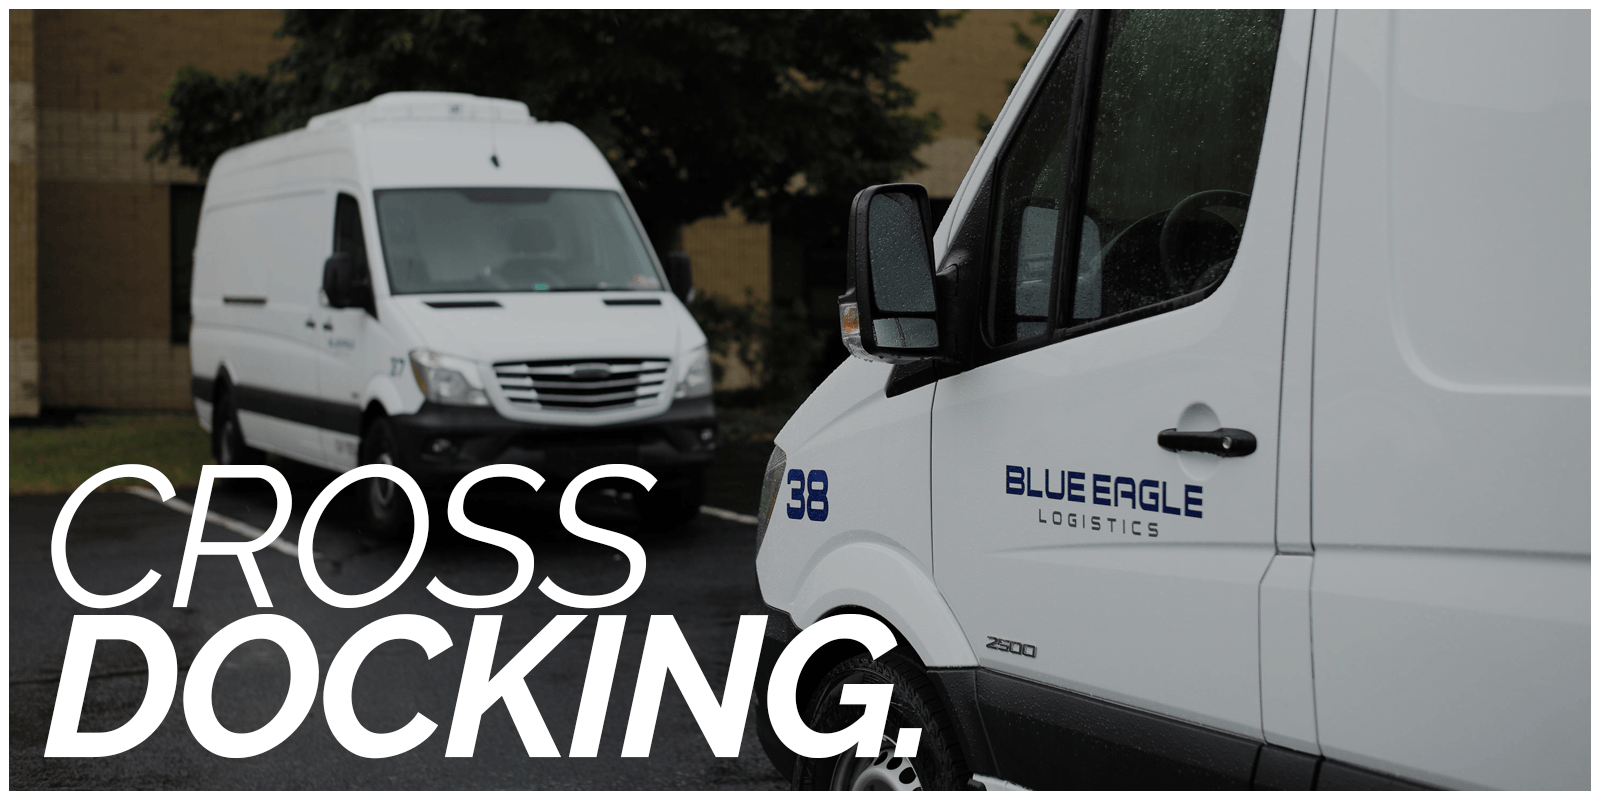 Blue Eagle Logistics Vans with text, Cross Docking